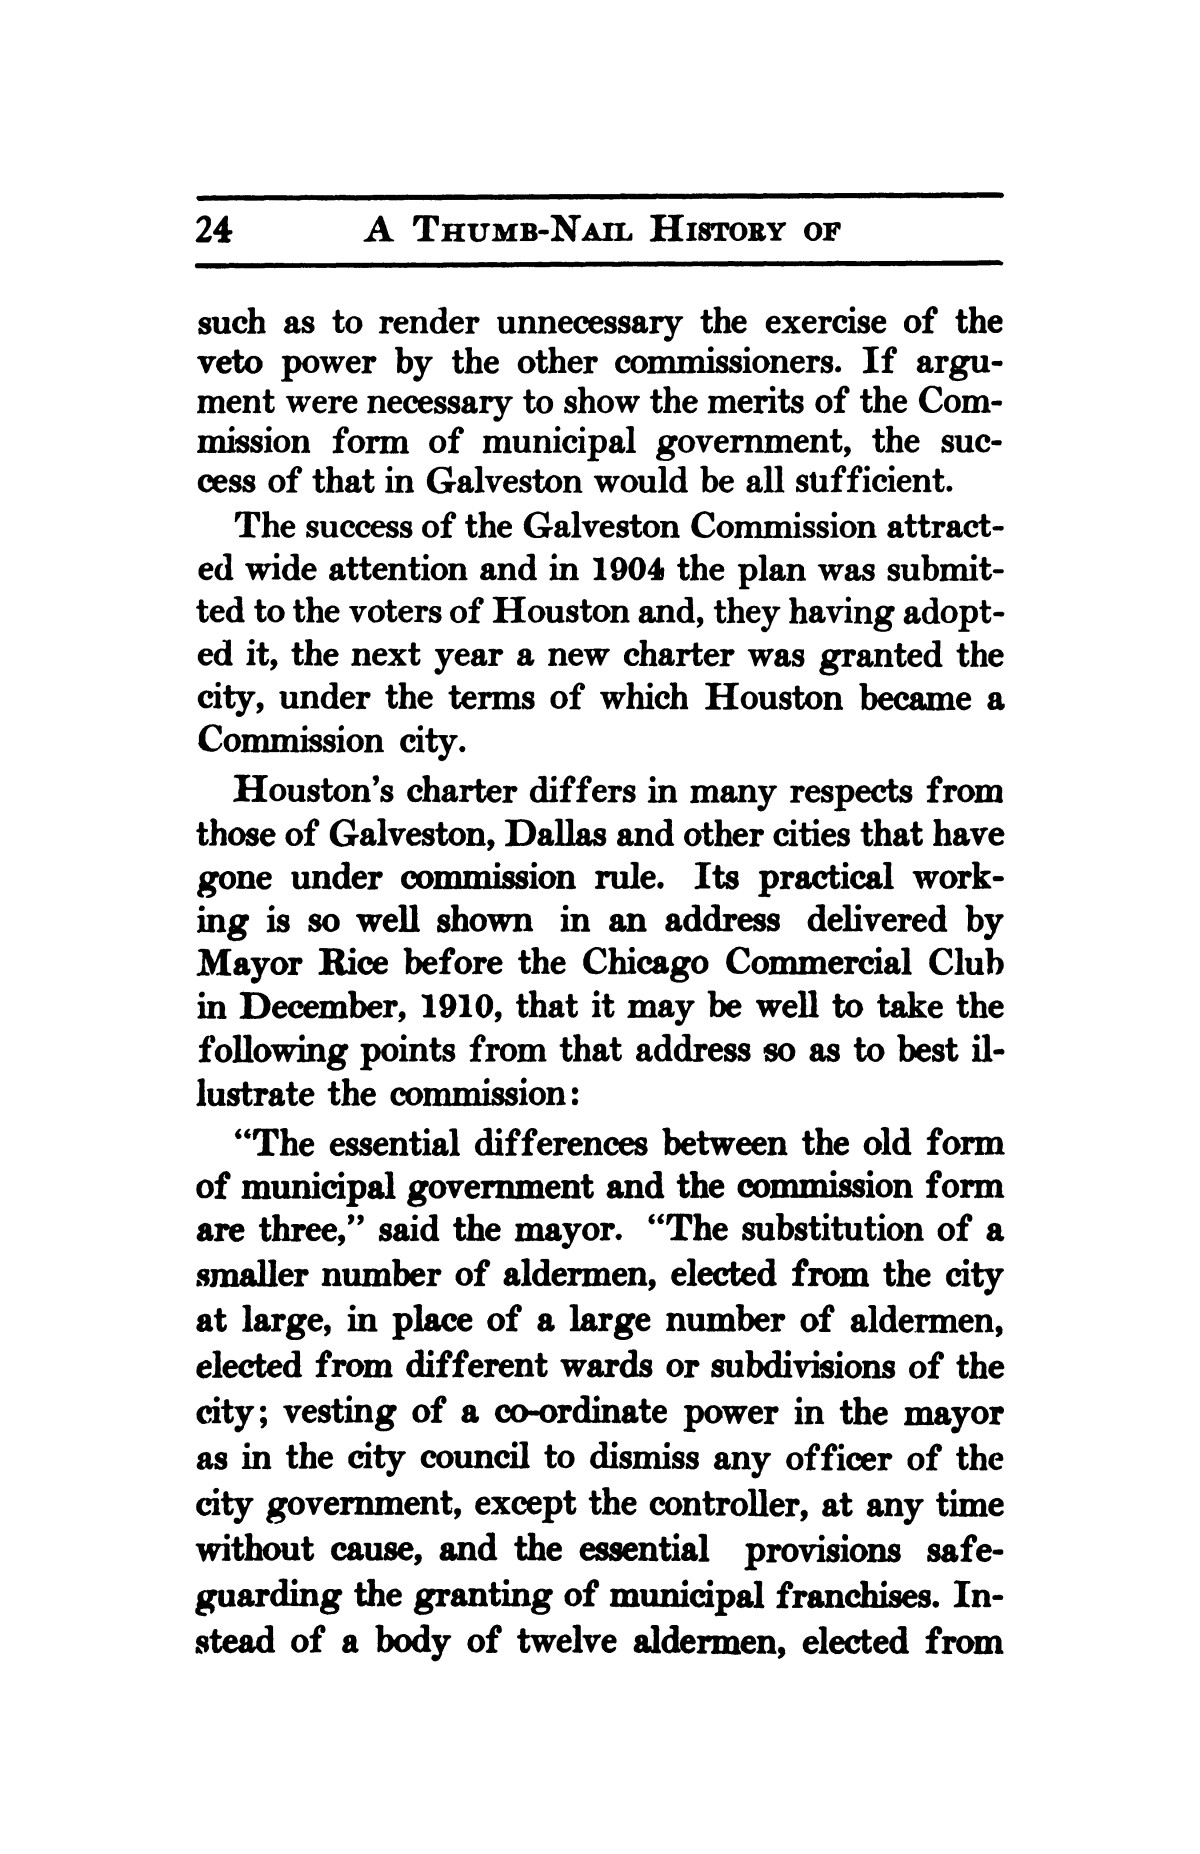 A thumb-nail history of the city of Houston, Texas, from its founding in 1836 to the year 1912                                                                                                      24